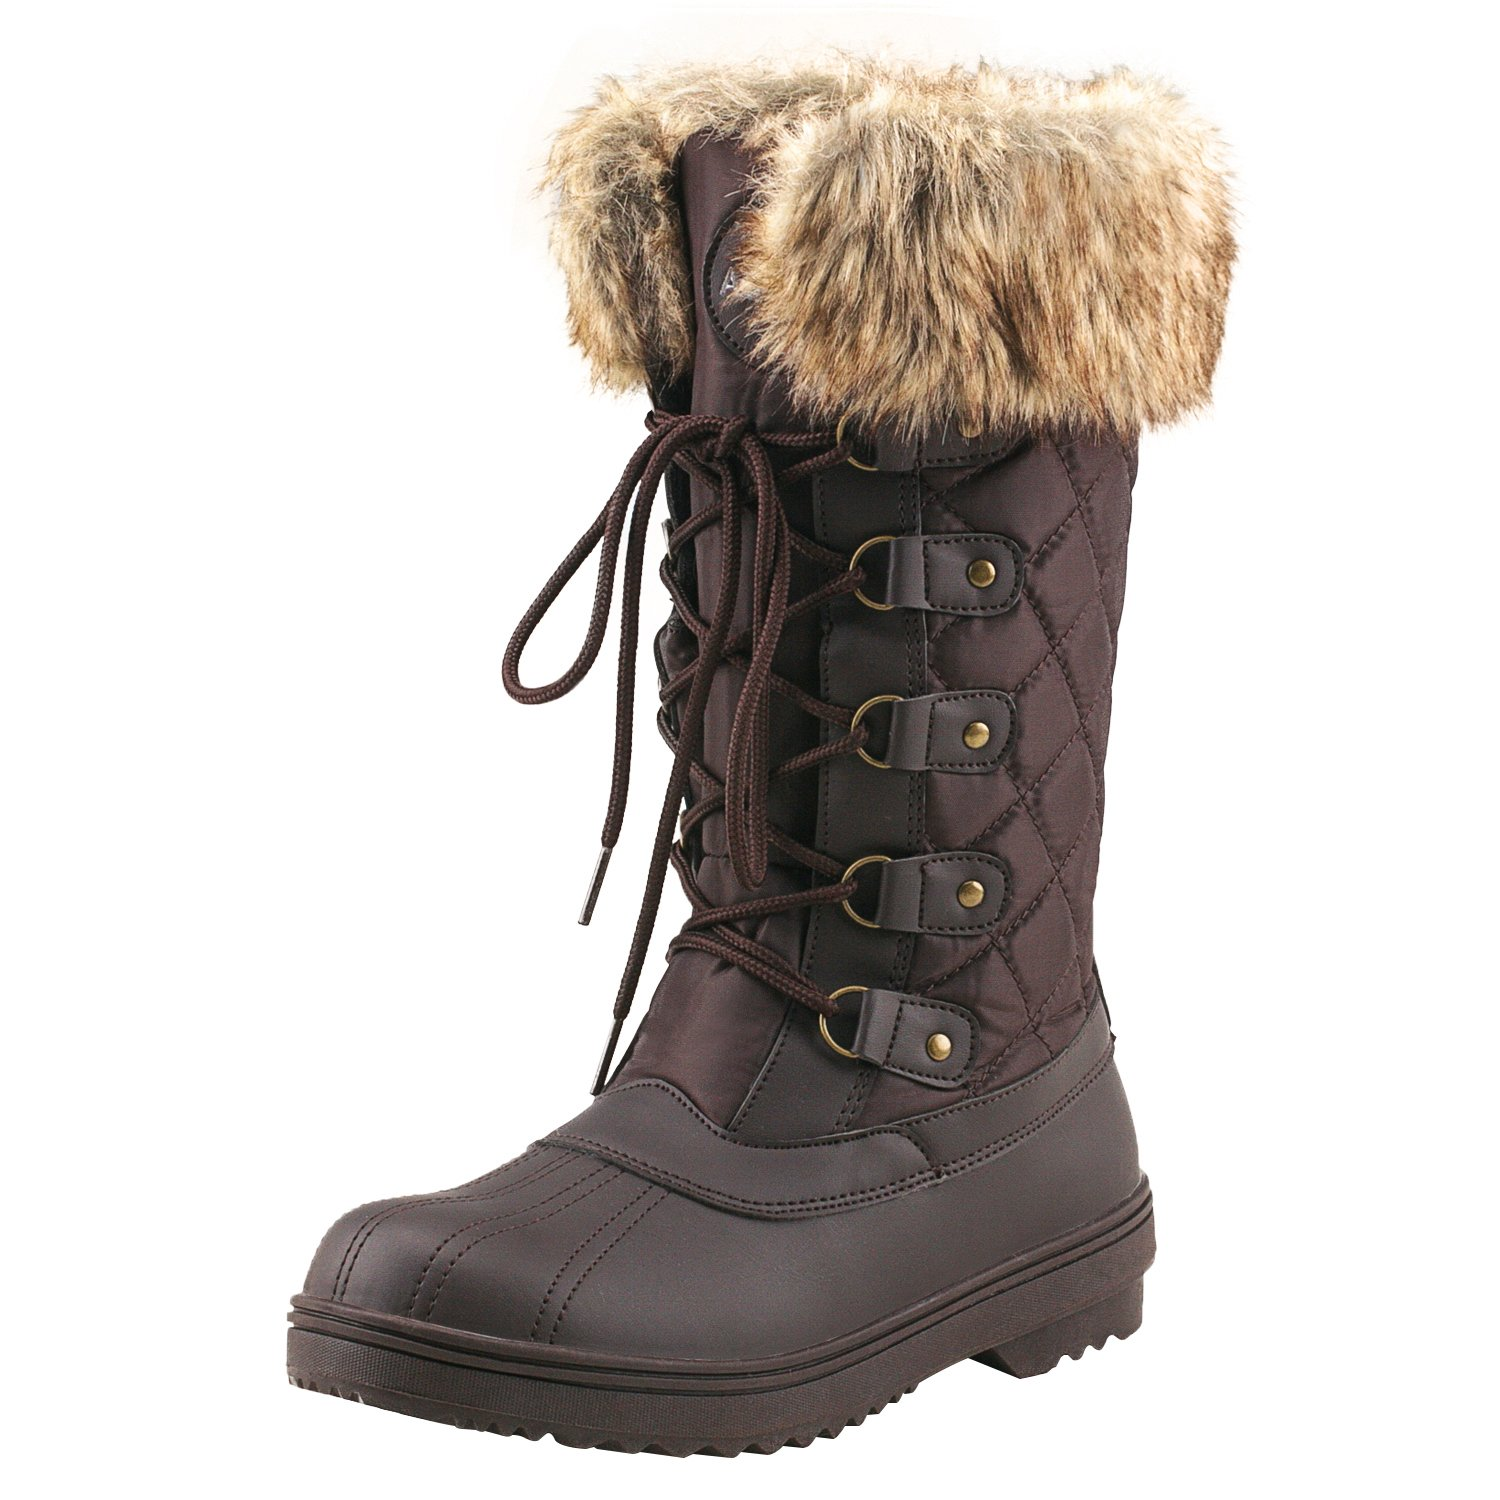 clear-cut texture the sale of shoes factory price Shenji Women's Lace-up Snow Boots Plaid Fur-Lined Winter Boots